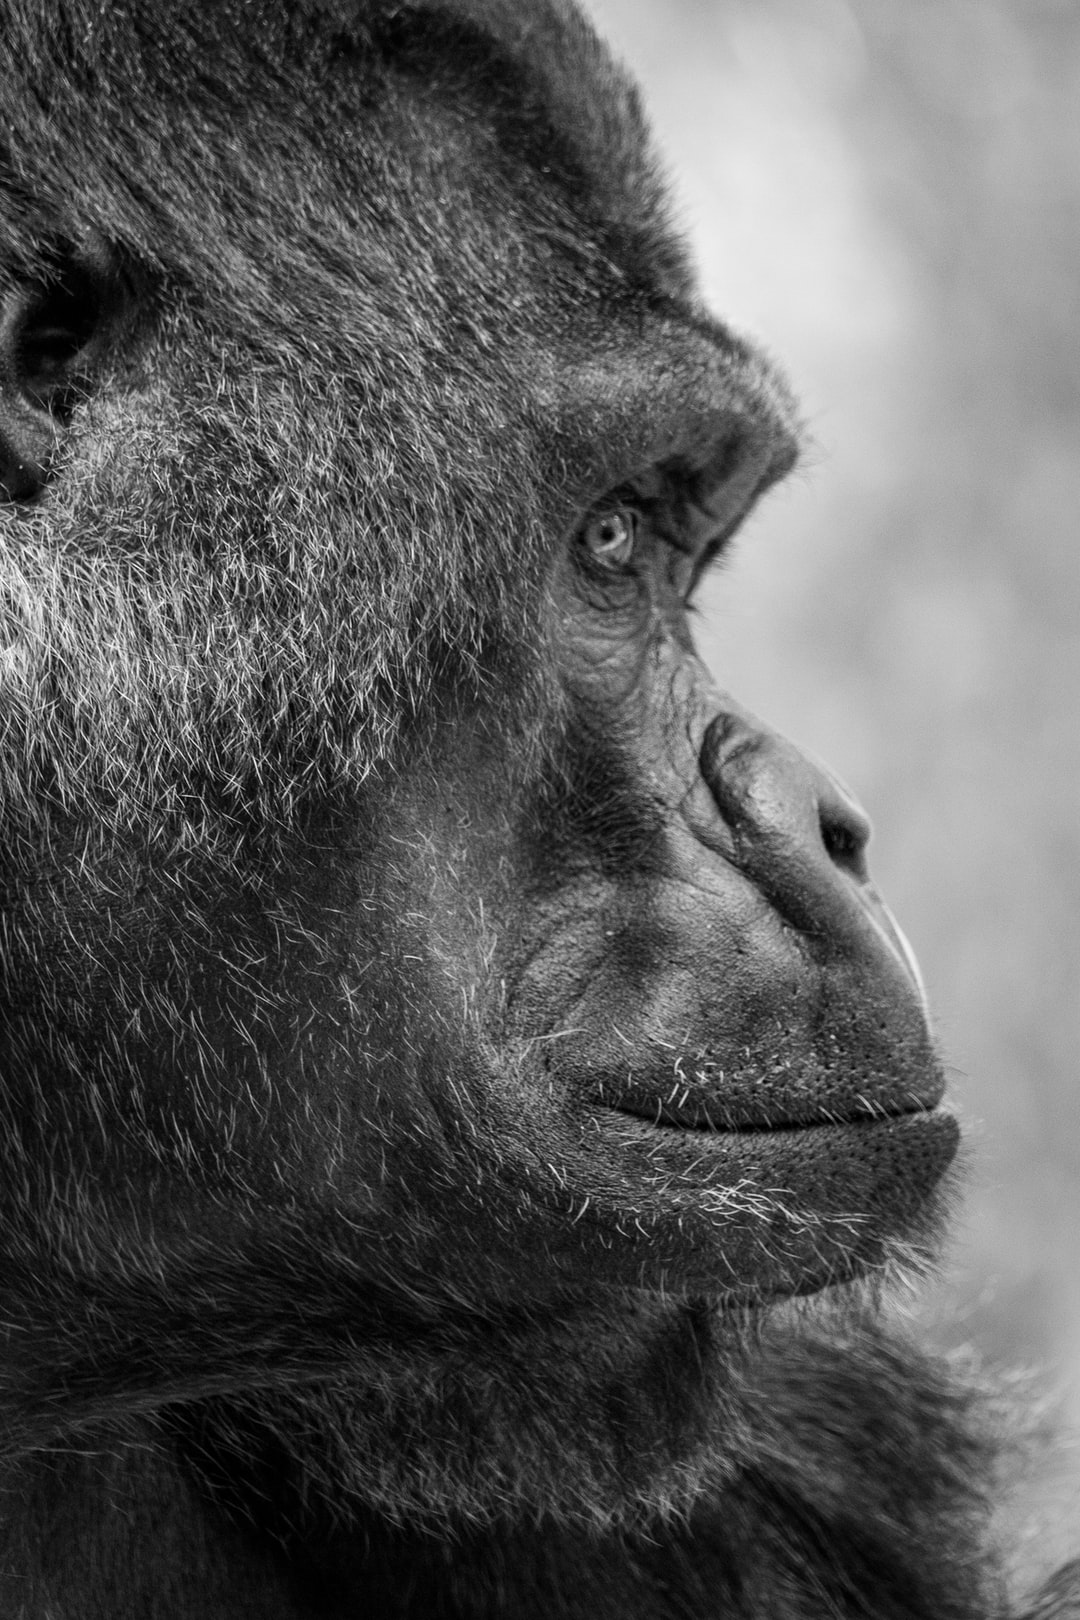 Portrait of a silverback gorilla in black and white at the Memphis Zoo.